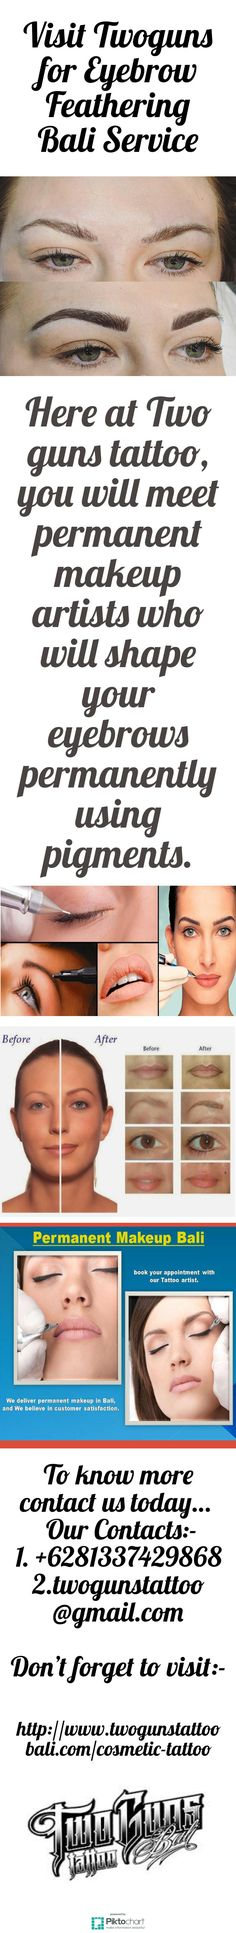 Here at Two guns tattoo, you will meet permanent makeup artists who will shape your eyebrows permanently using pigments. Hurry up! Visit Twoguns for Eyebrow Feathering Bali Service.  http://www.twogunstattoobali.com/cosmetic-tattoo